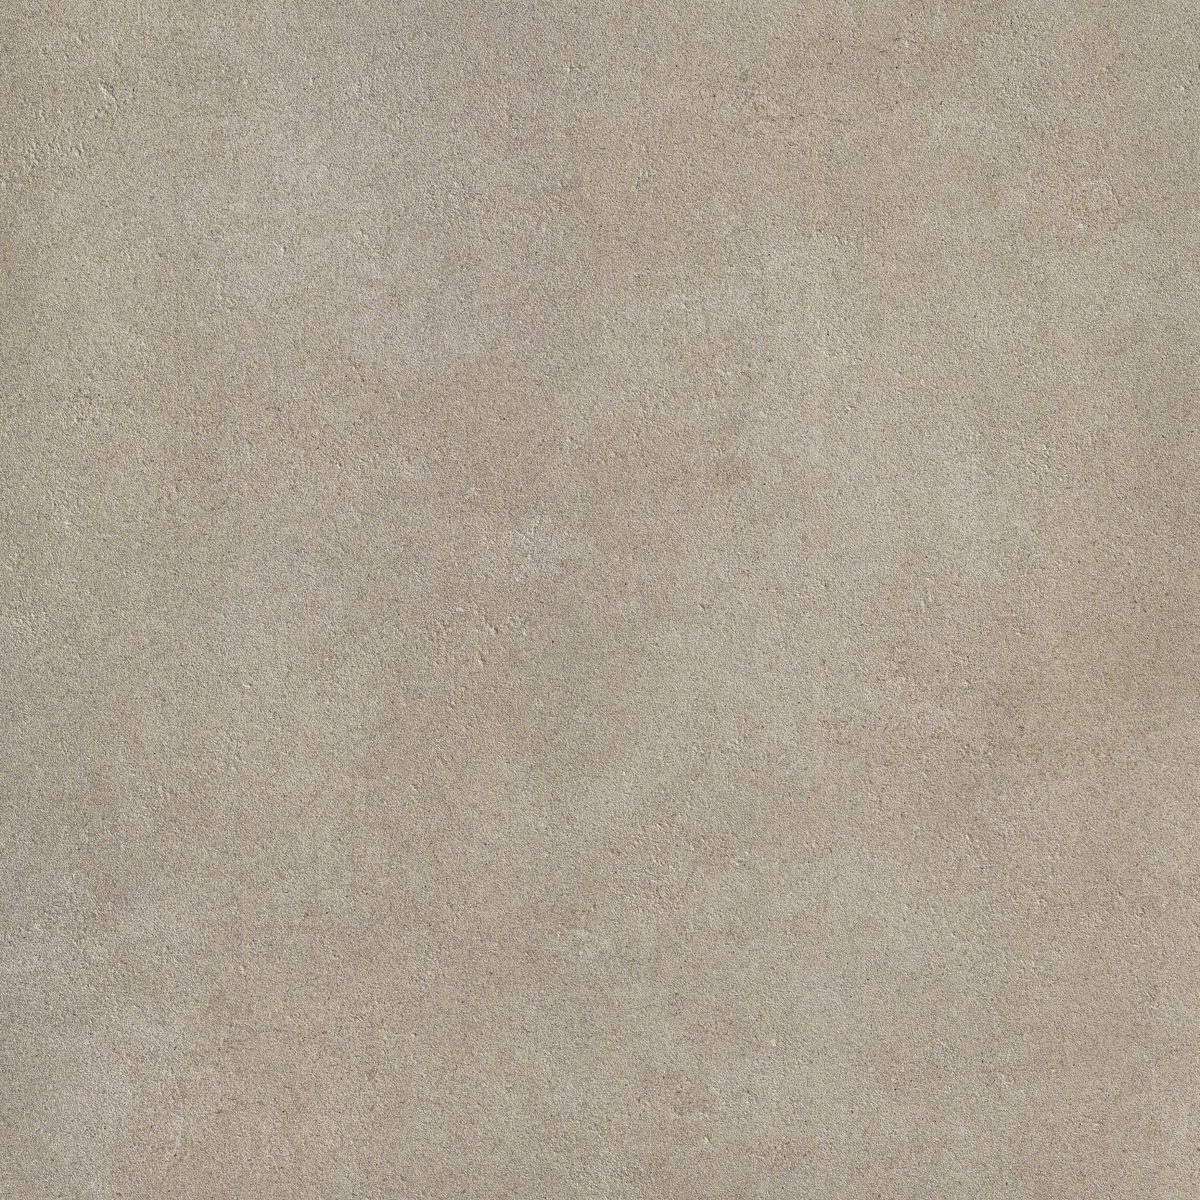 Pavimentos exteriores - Margres -Slabstone Light Grey